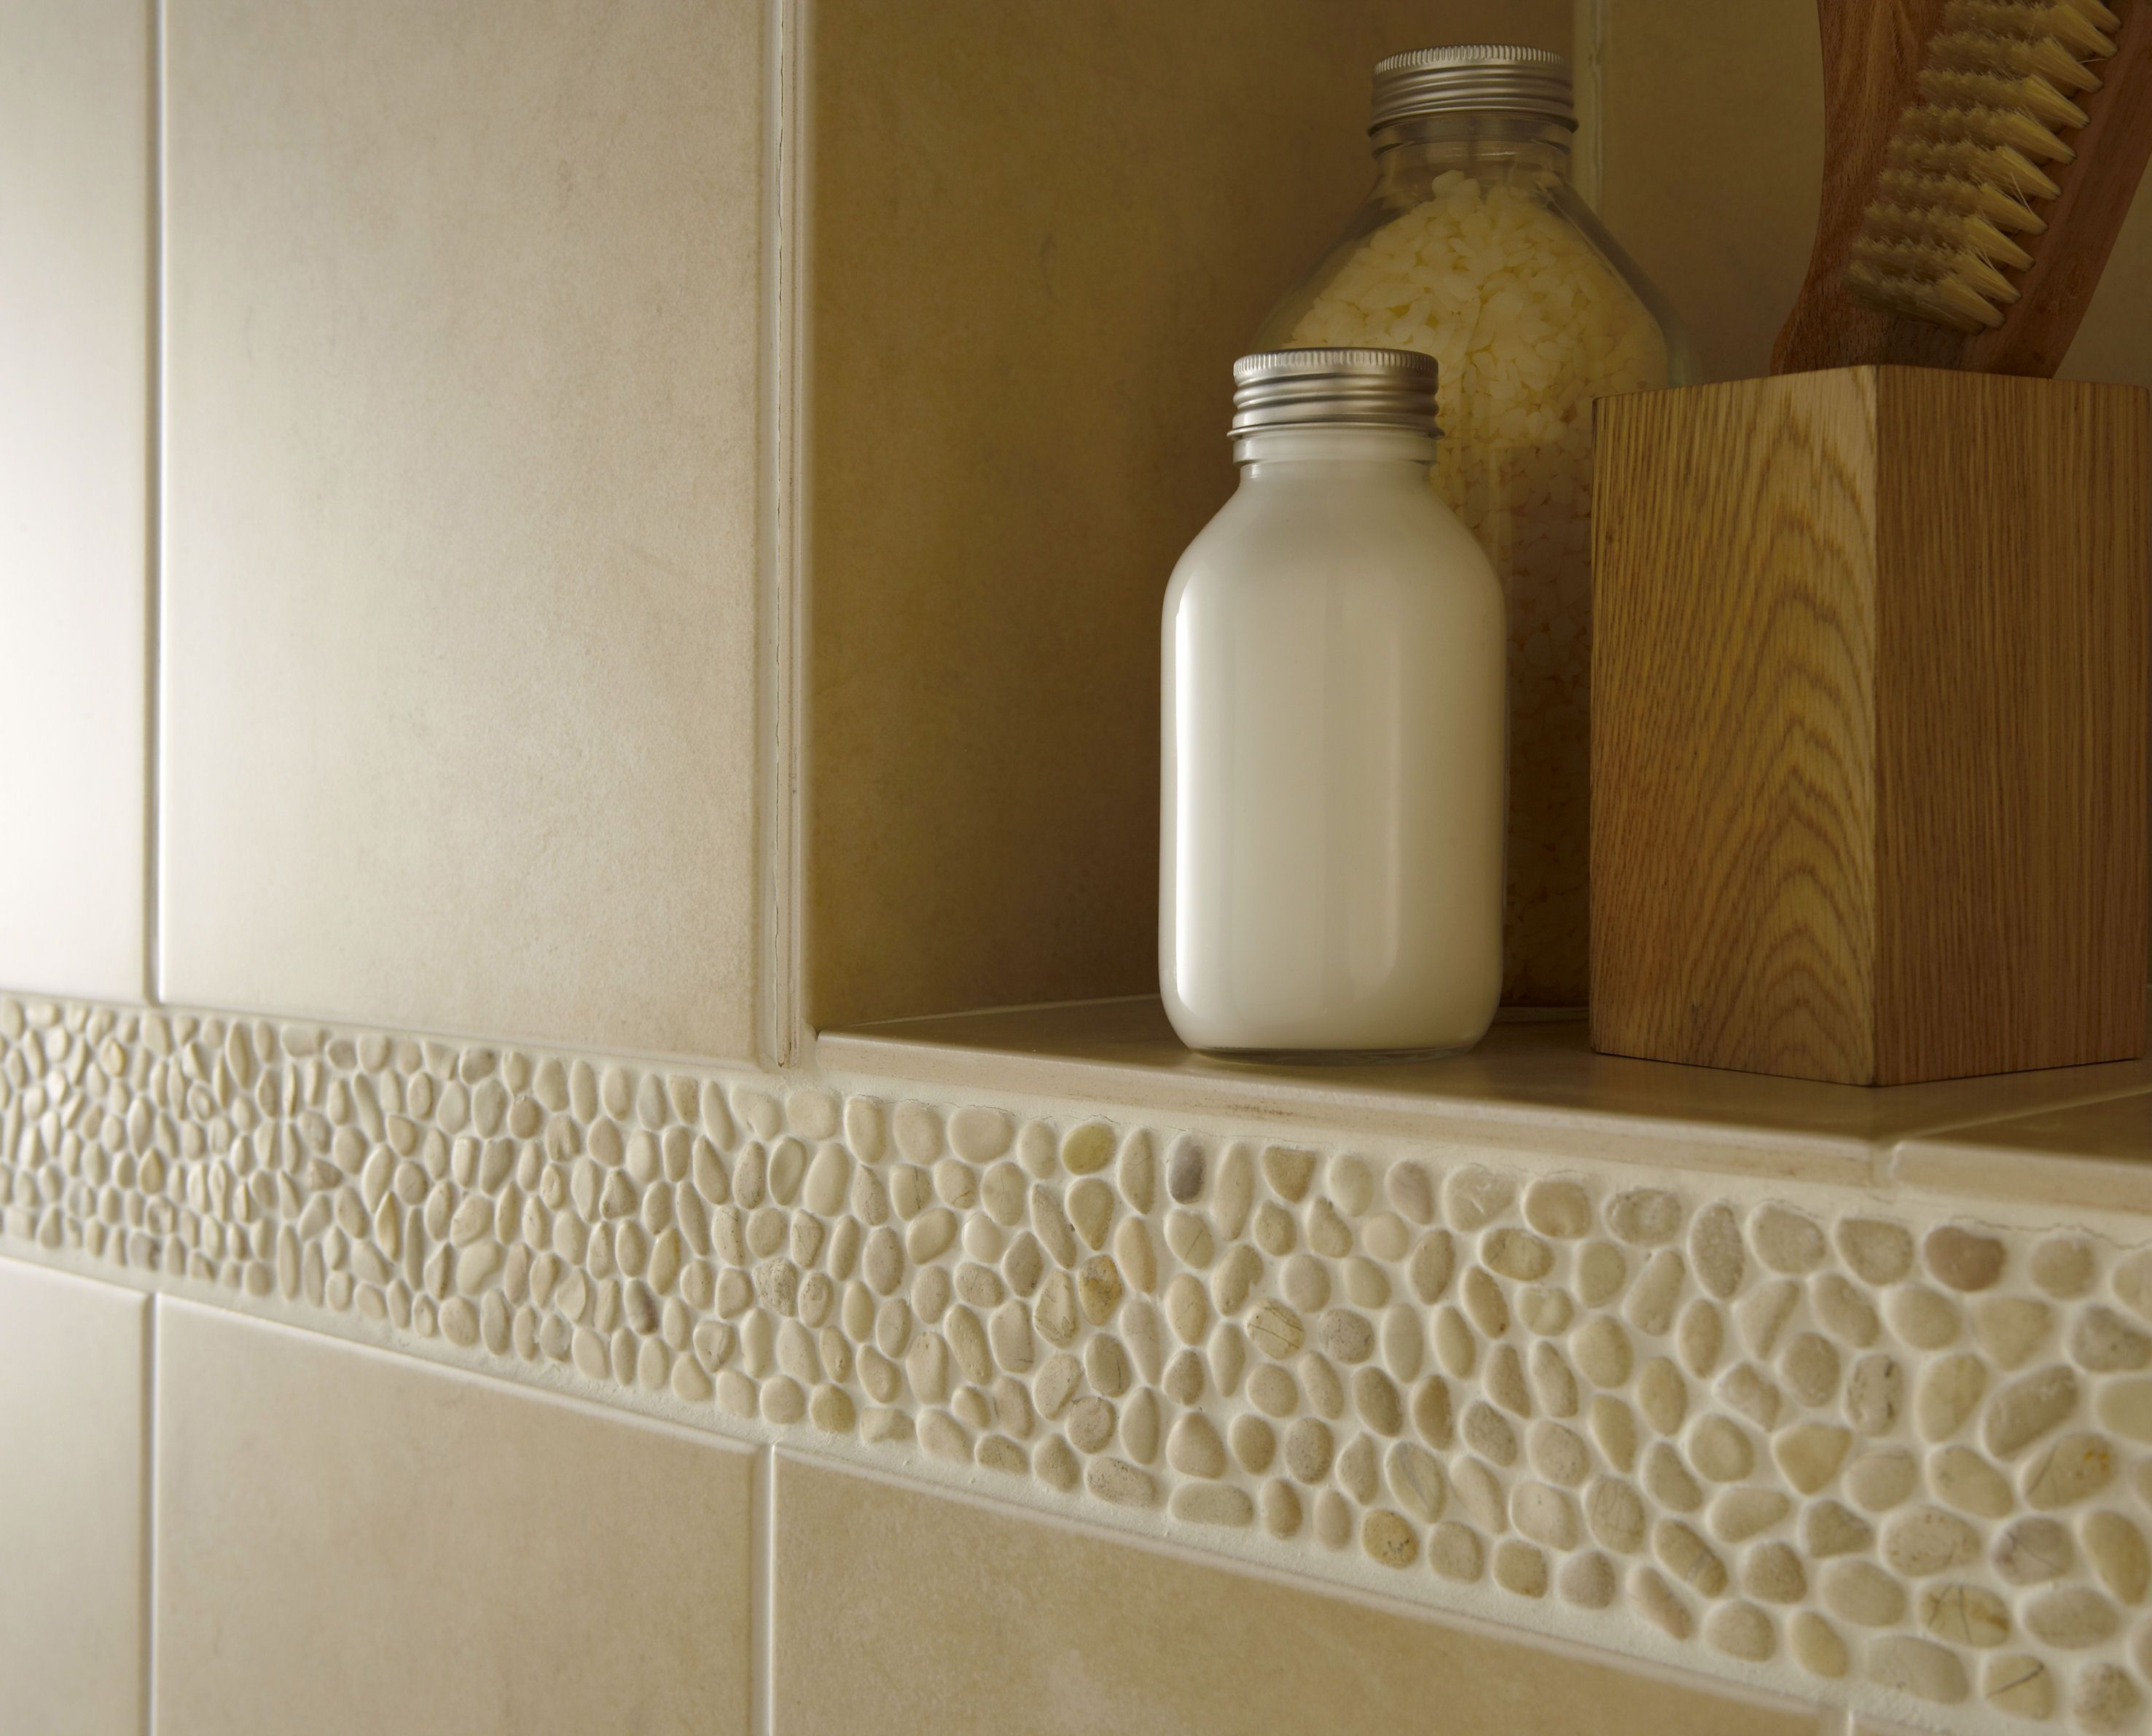 Good Laura Ashley Malvern Pebble Beige Strip X Wall Tile 5 Per Pack     Malvern  Range   Laura Ashley Collection   Shop By Range   Tiles